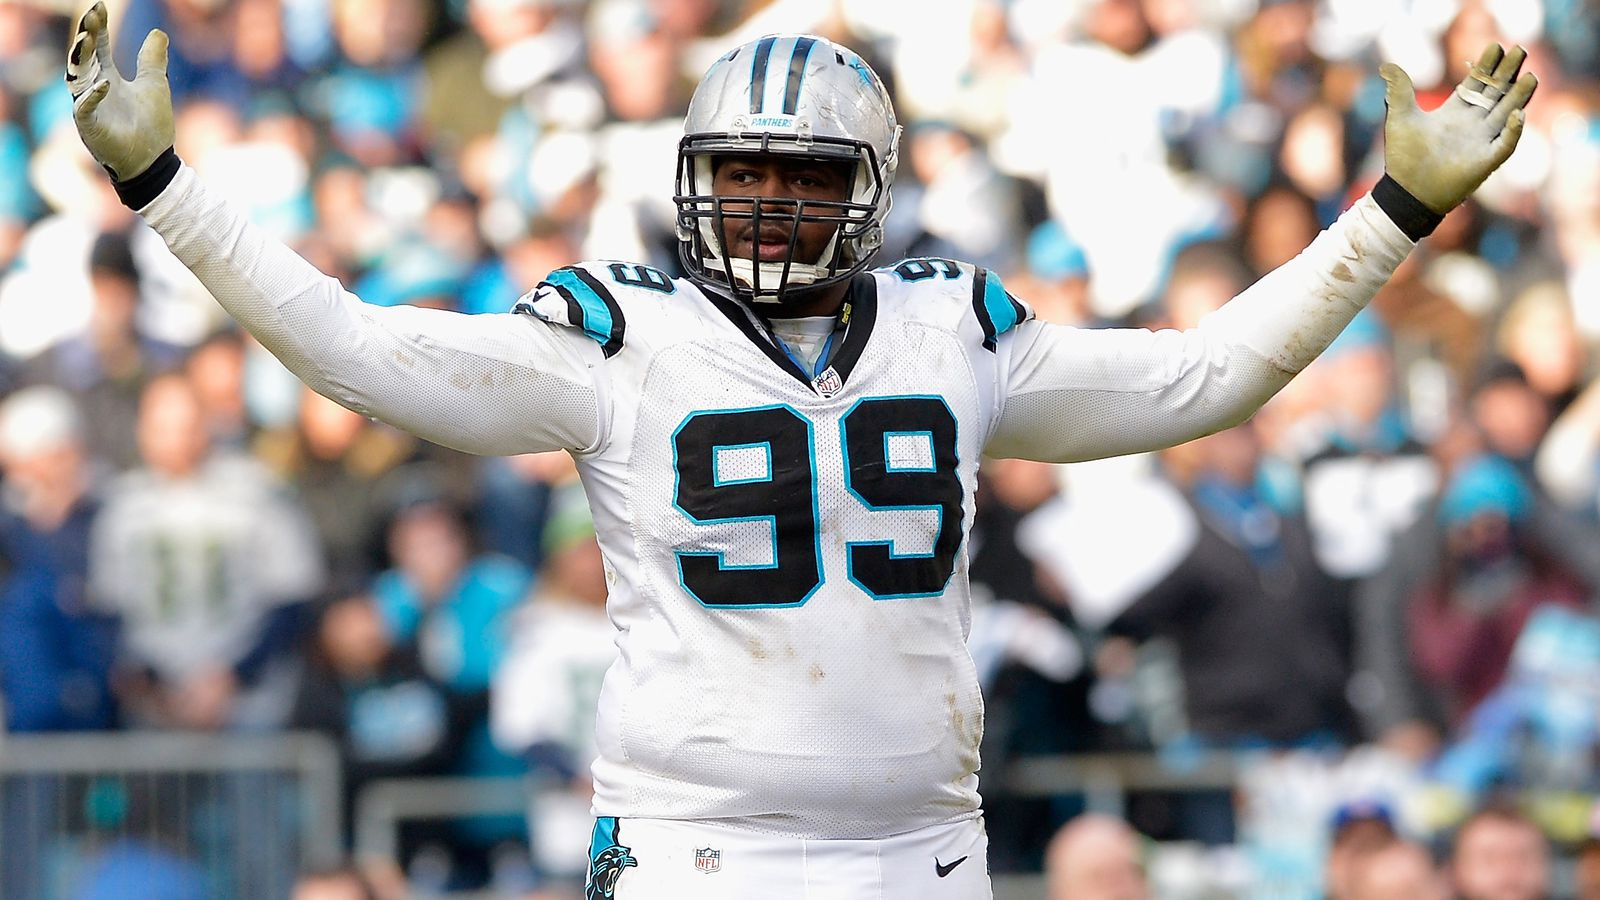 Nf Nfl Free Agents 2016 Rankings -